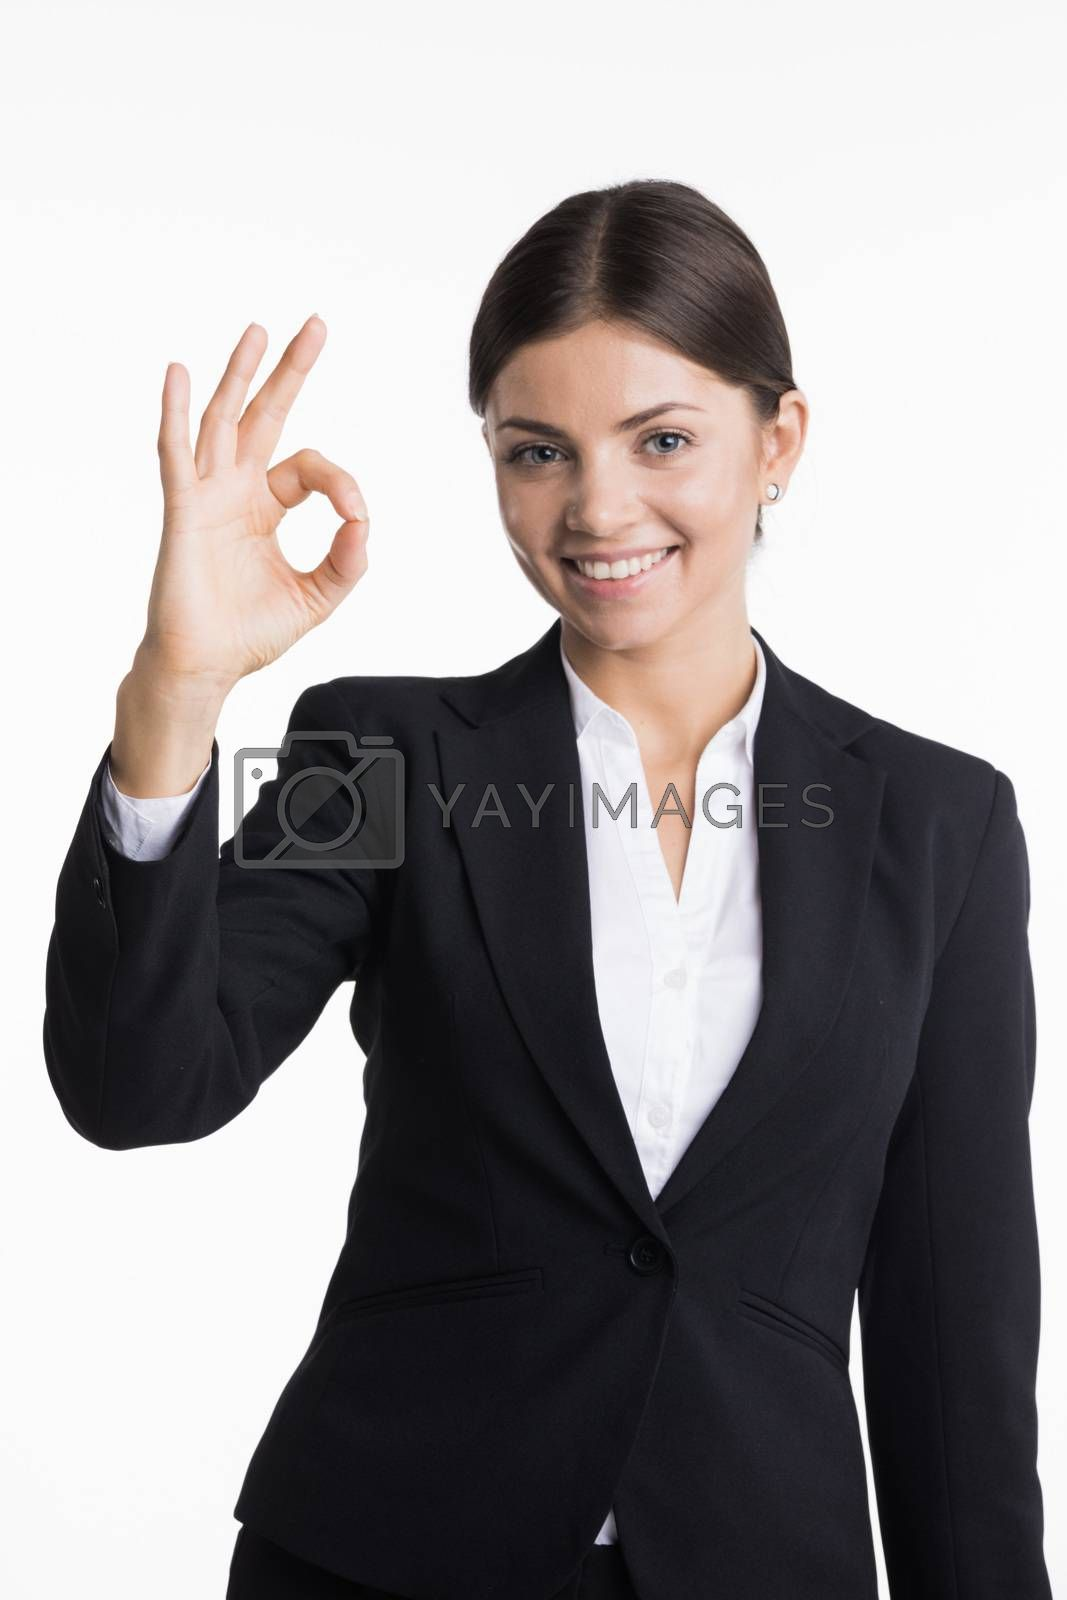 Businesswoman showing OK sign by Yellowj